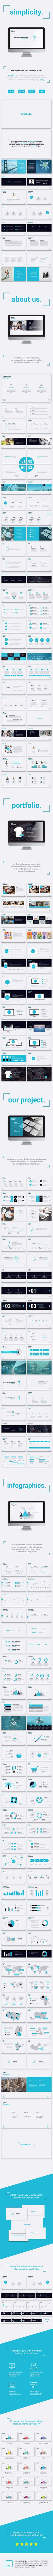 Simplicity – Premium and Easy to Edit Template #design Download: http://graphicriver.net/item/simplicity-premium-and-easy-to-edit-template/12165048?ref=ksioks